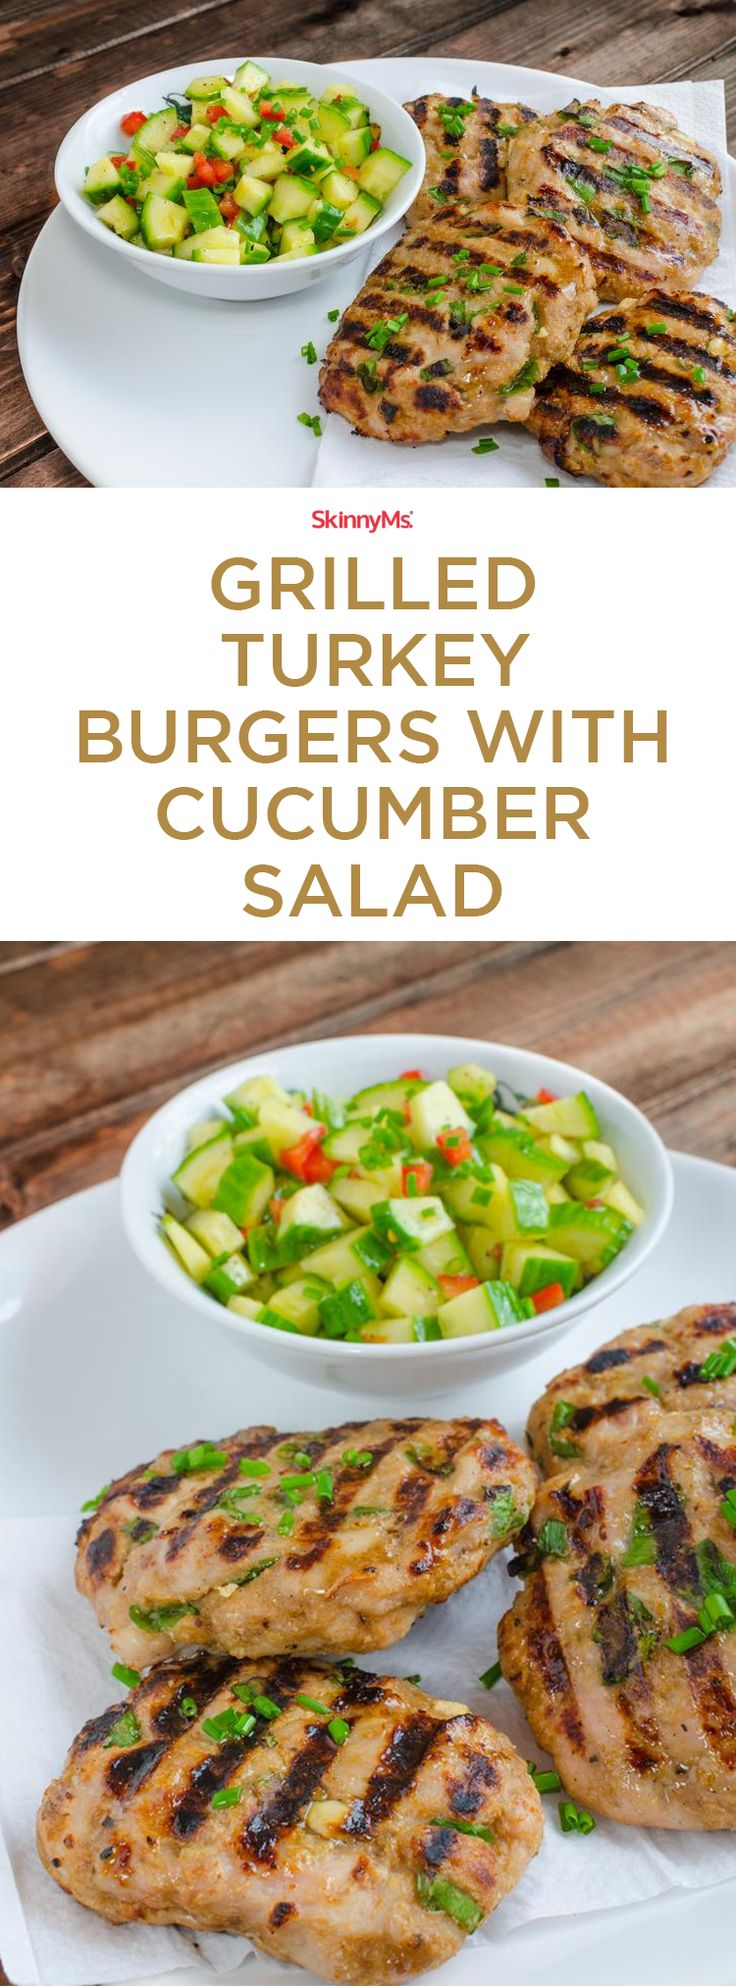 Fire up the grill for Memorial Day because we have Grilled Turkey Burgers with Cucumber Salad on the menu! The Burgers are so juicy, flavorful minus the carbs!  #skinnyms #memorialday #lowcarb